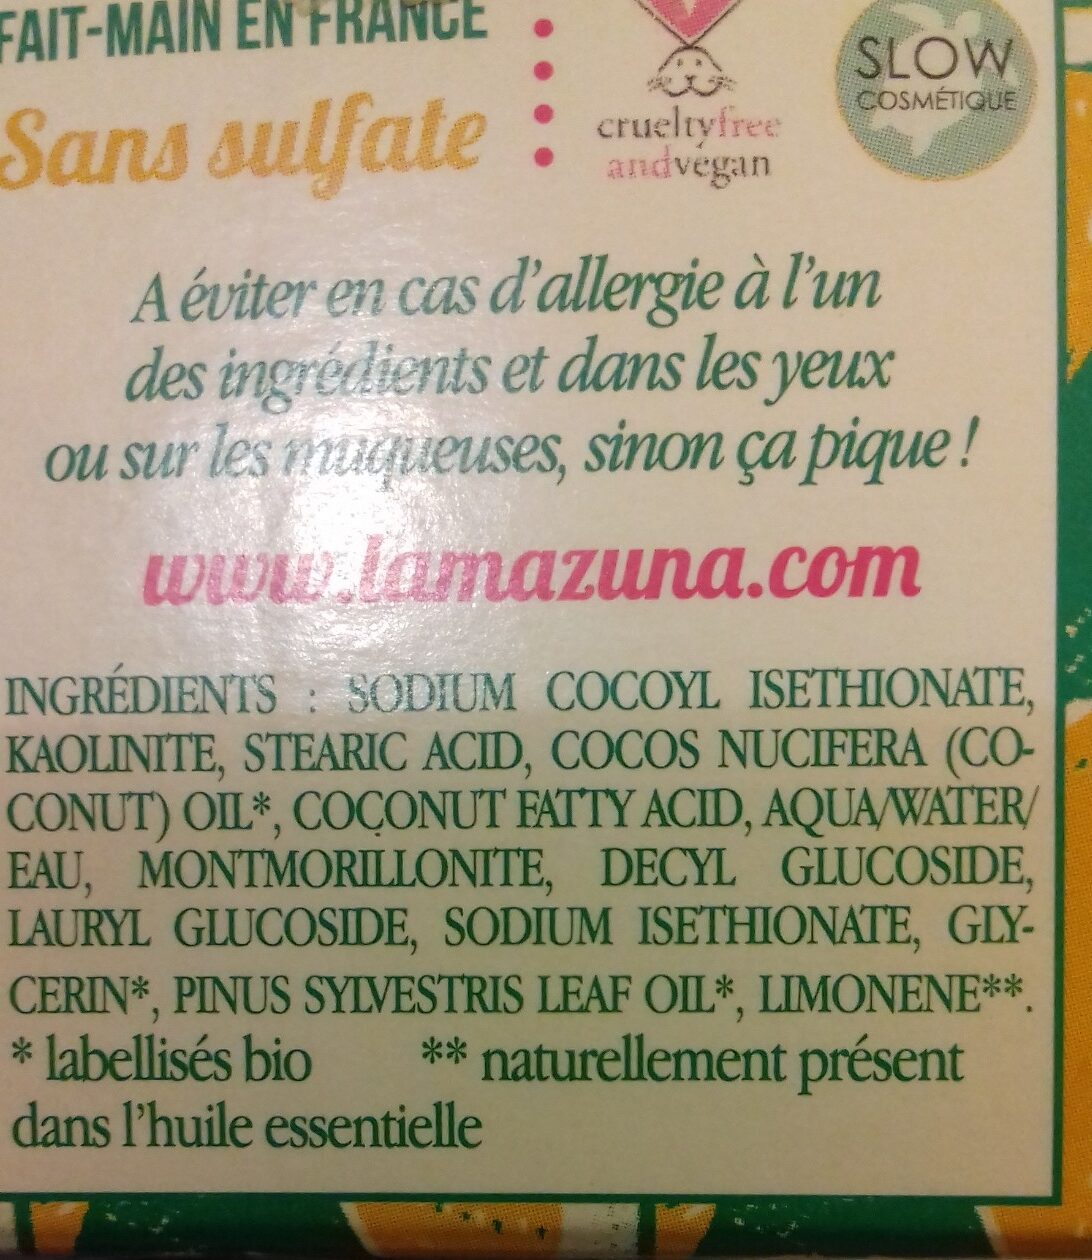 Shampoing solide - cheveux normaux - au pin sylvestre - Ingredients - fr